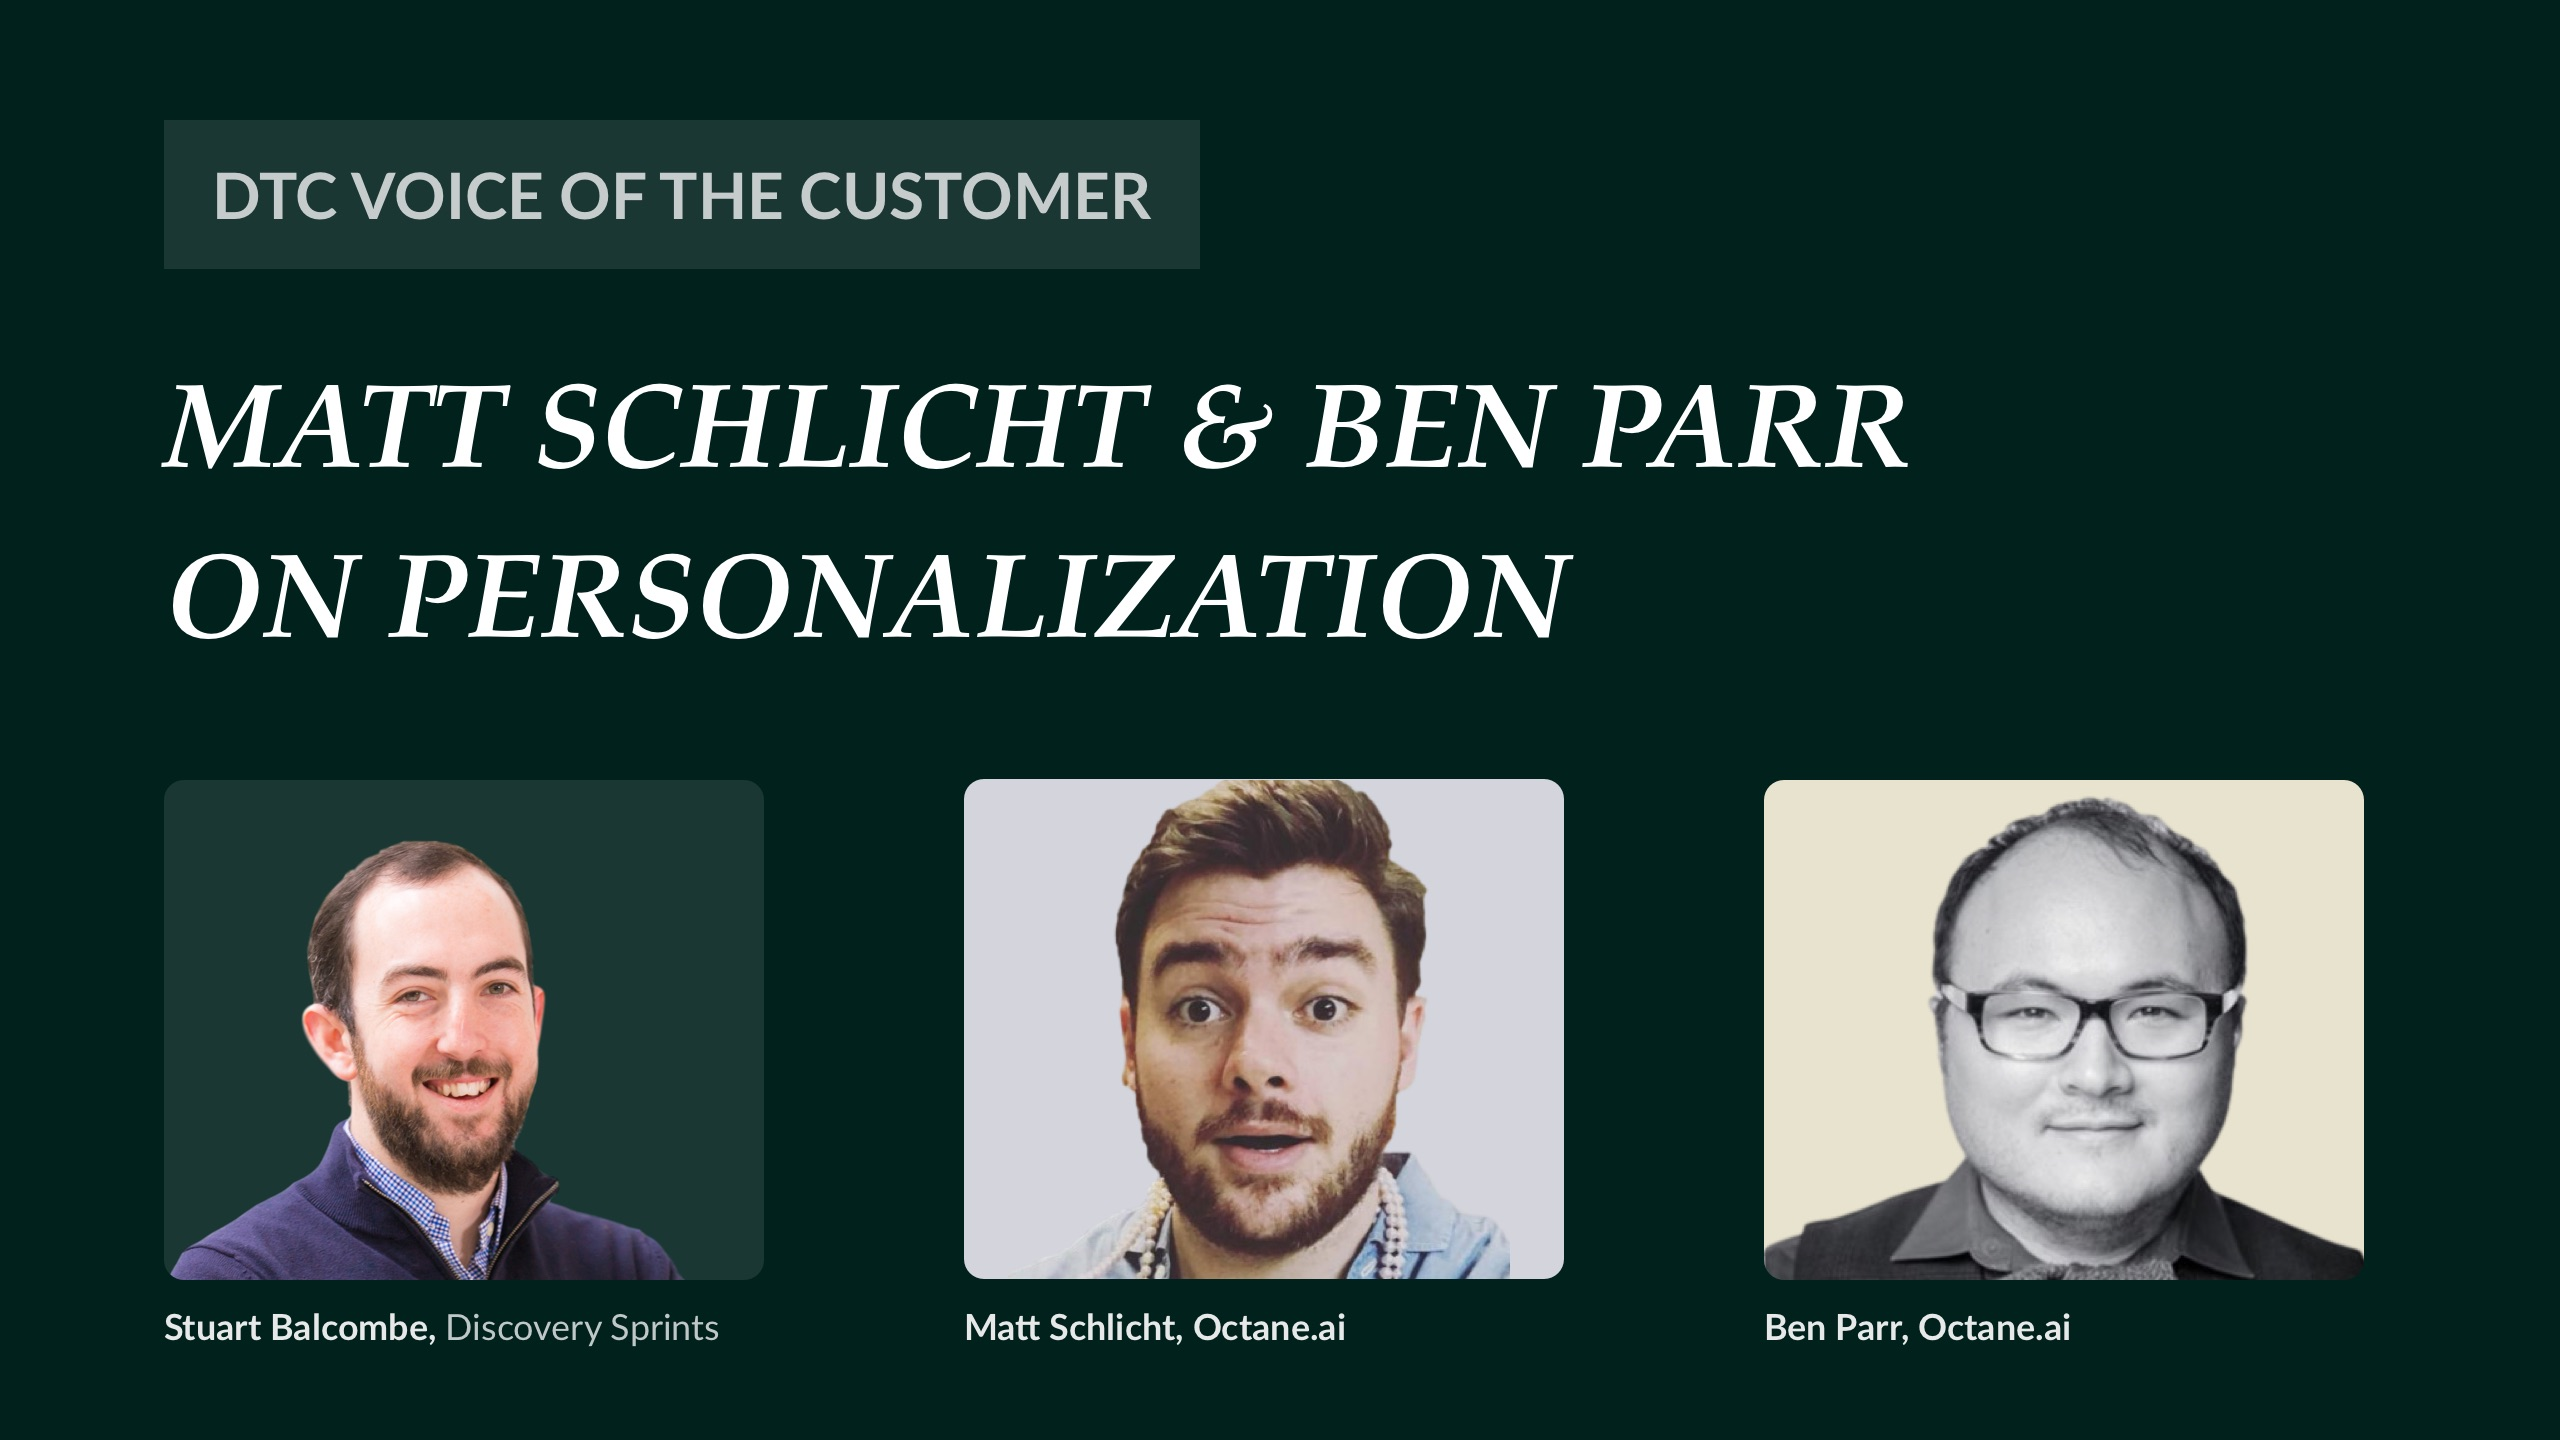 Matt Schlicht & Ben Parr on personalization